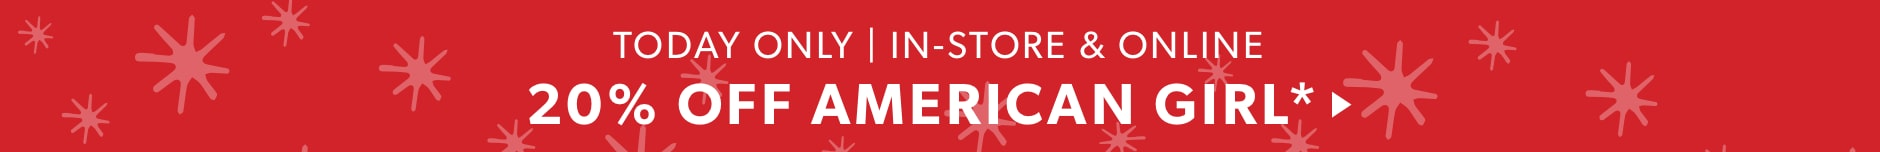 Today Only In-Store & Online - 20% Off American Girl!